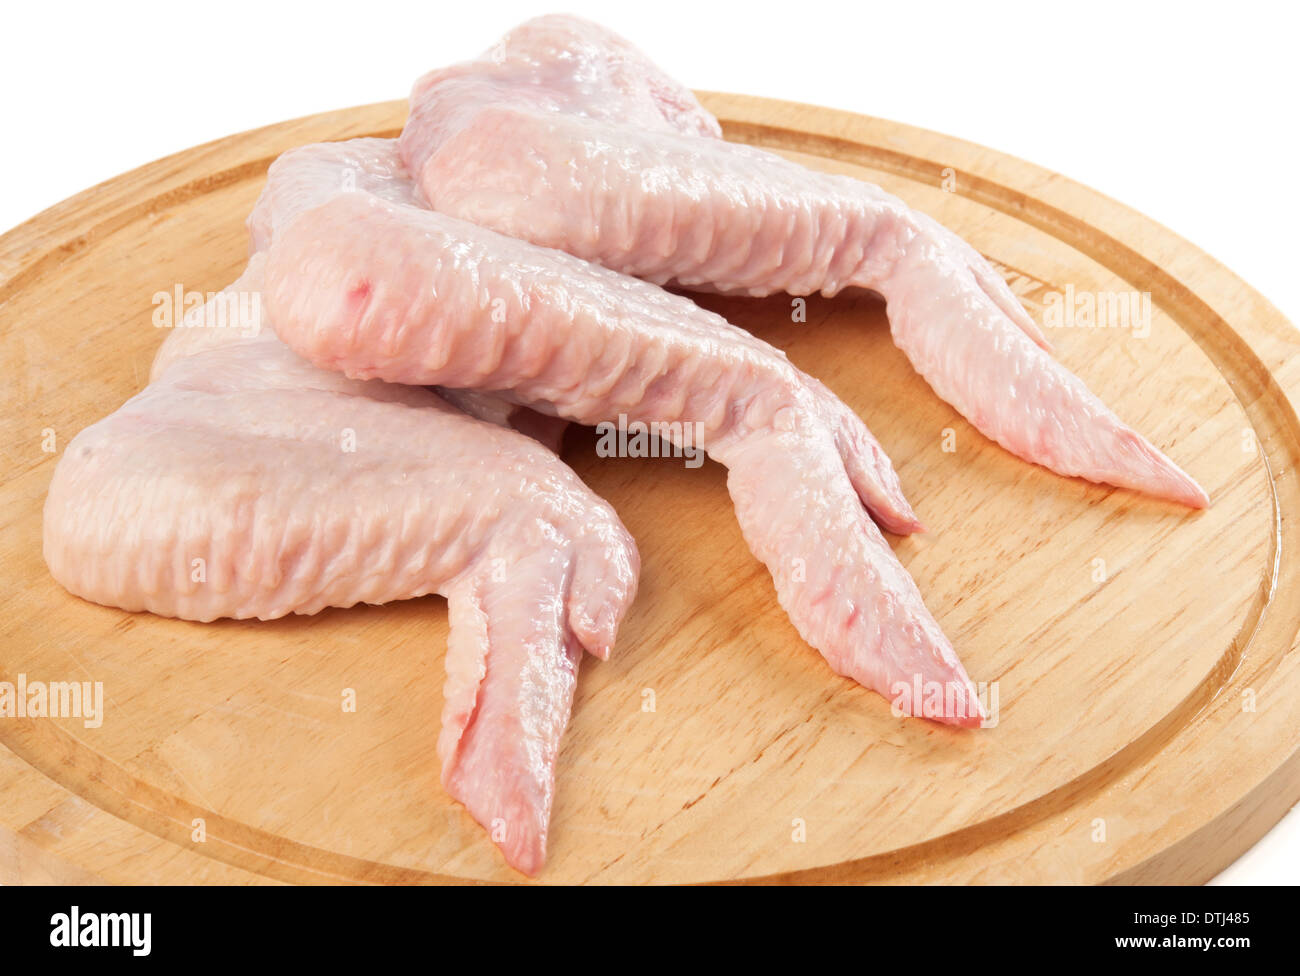 Damp hen wings on the cutting board. - Stock Image